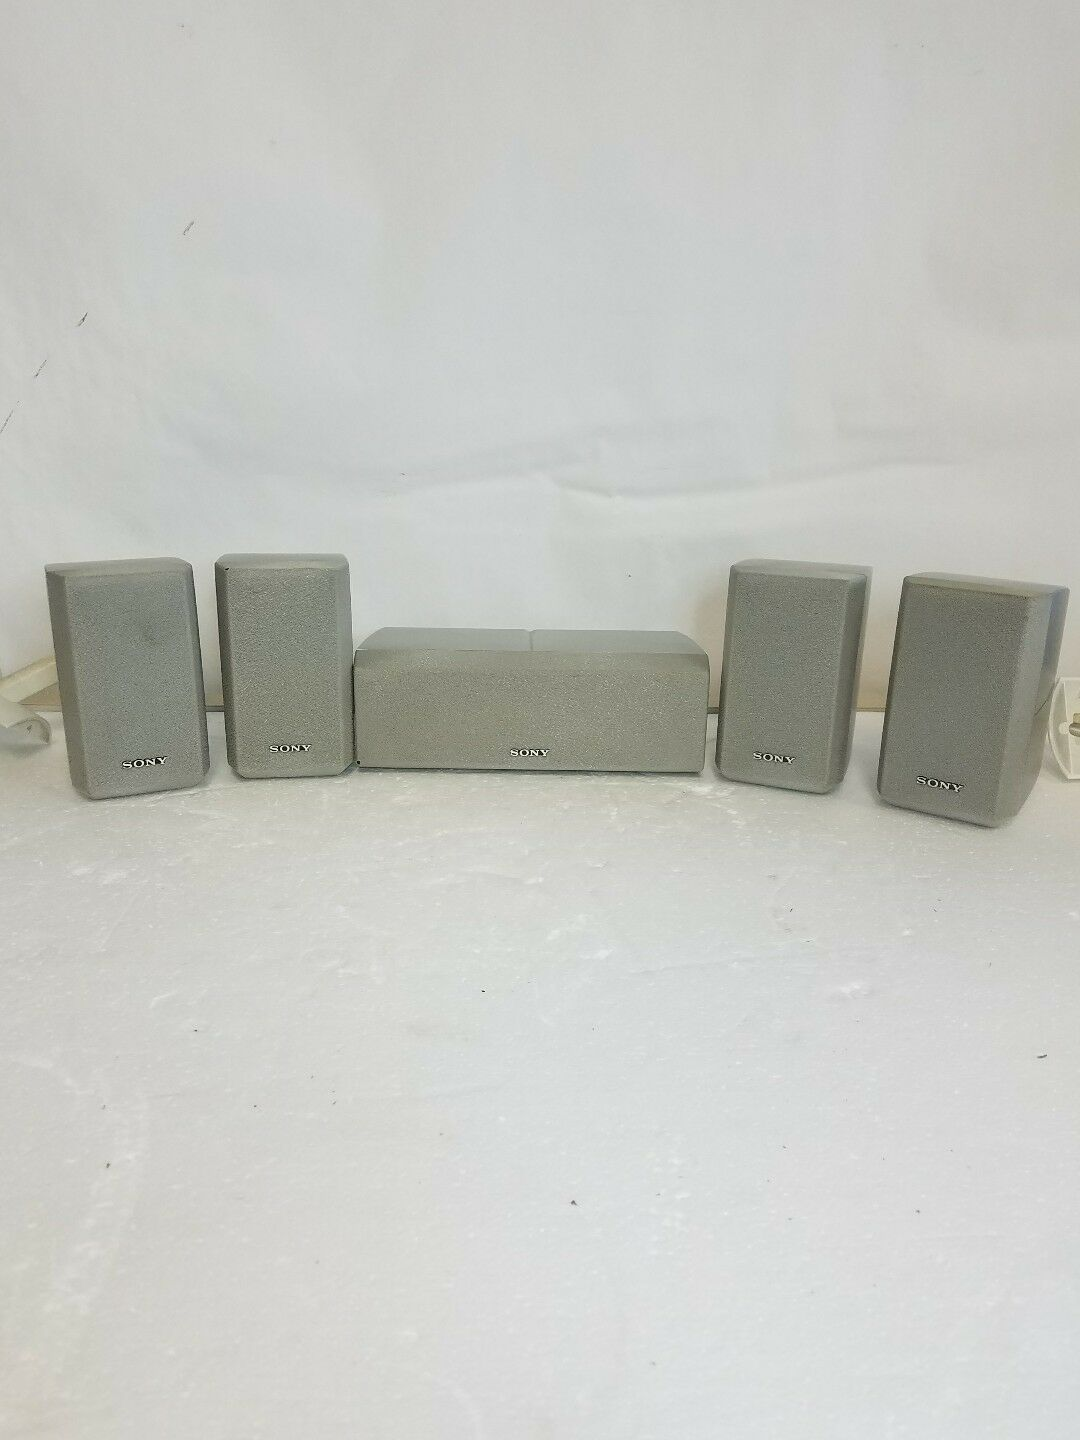 SONY SURROUND SPEAKERS 1 SS-CNP2 AND 4 SS-MSP2